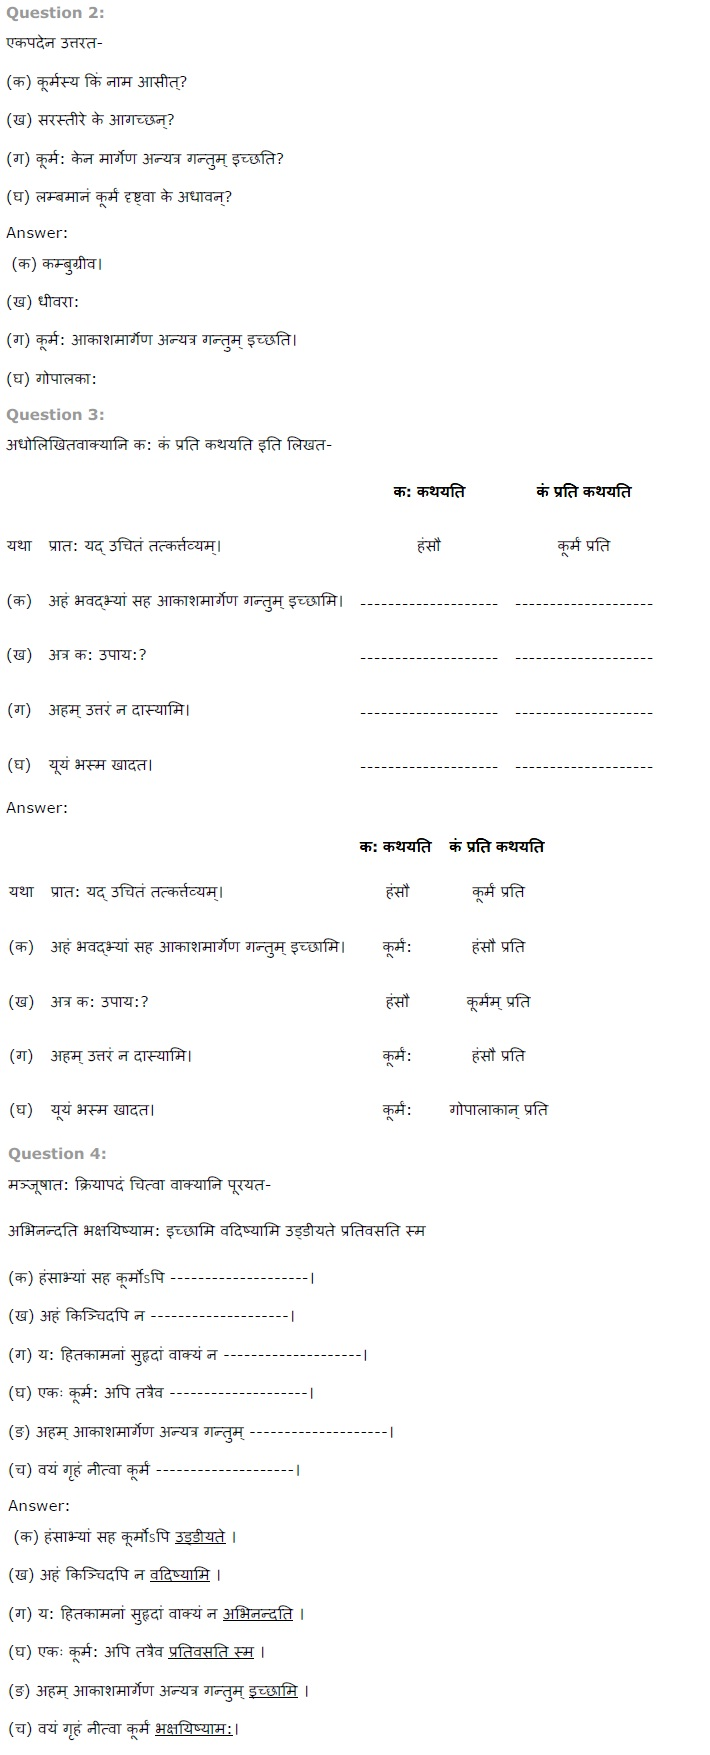 NCERT Solutions For Class 7 Sanskrit Chapter 2 दुर्बुद्धि विनश्यति PDF Download